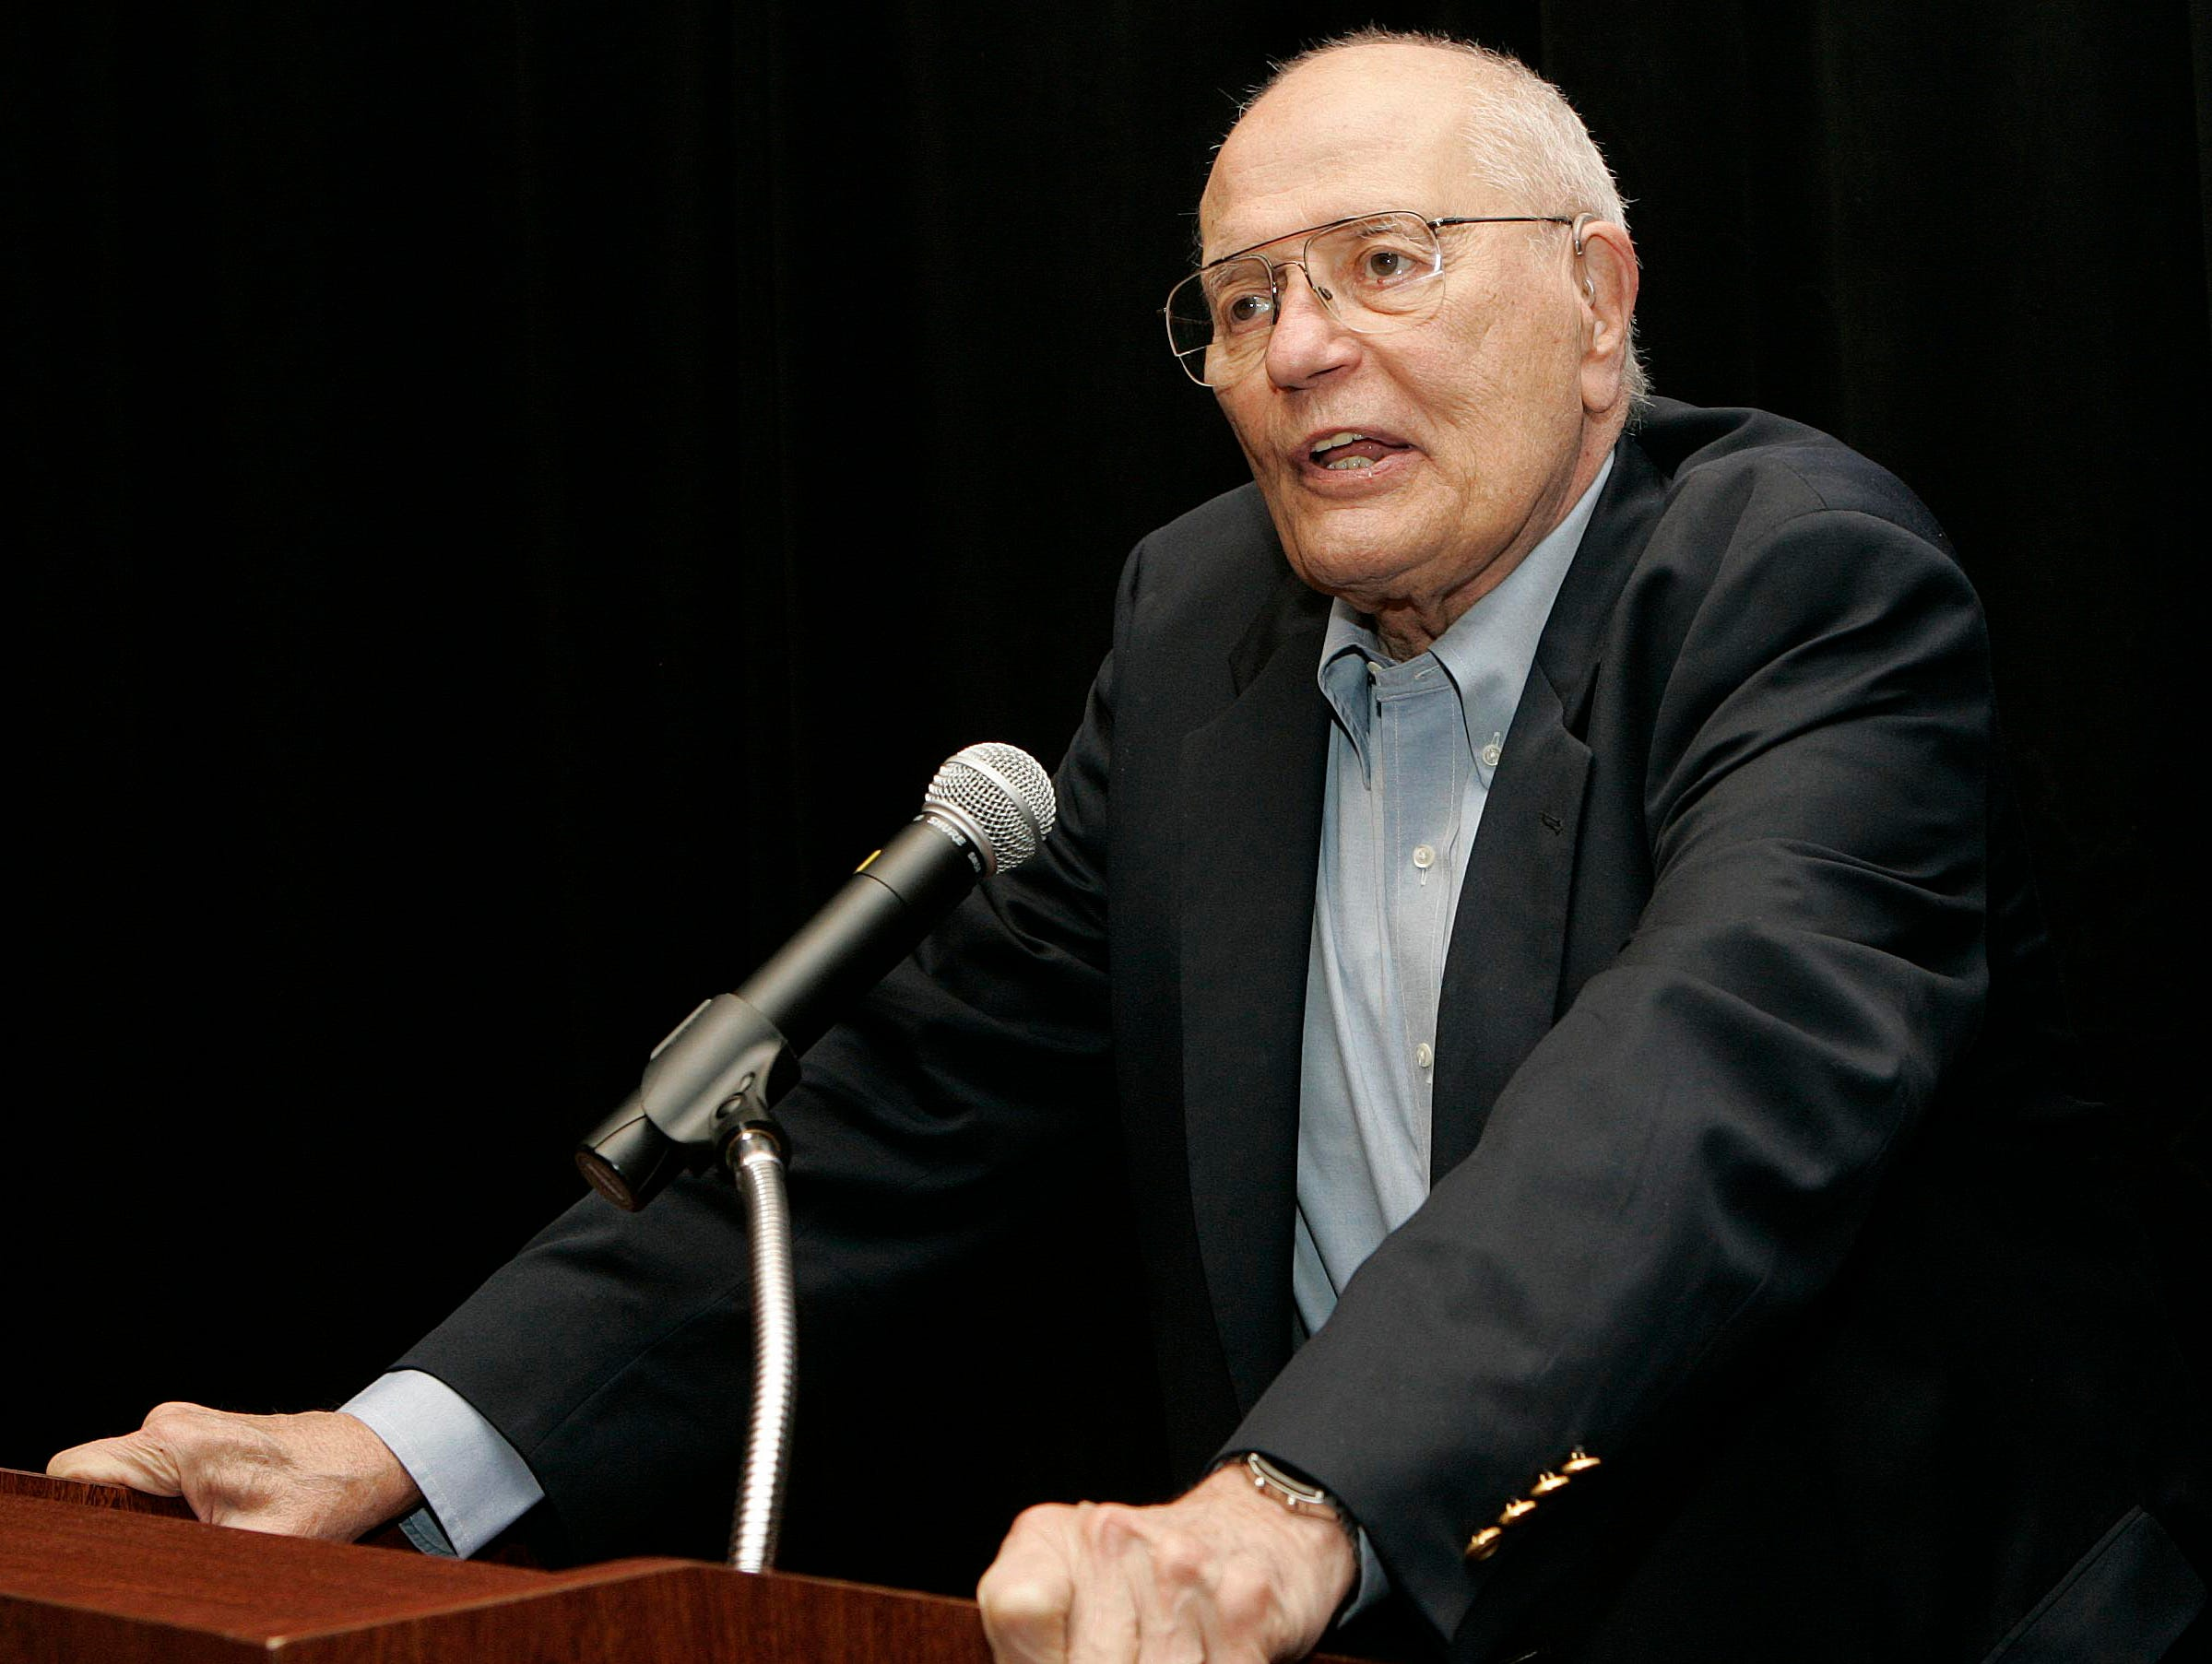 At the 2008 Democratic Convention in Denver, Dingell speaks at a breakfast meeting and rally for the Michigan delegates, before they return home to get out the vote for presidential candidate Barack Obama.